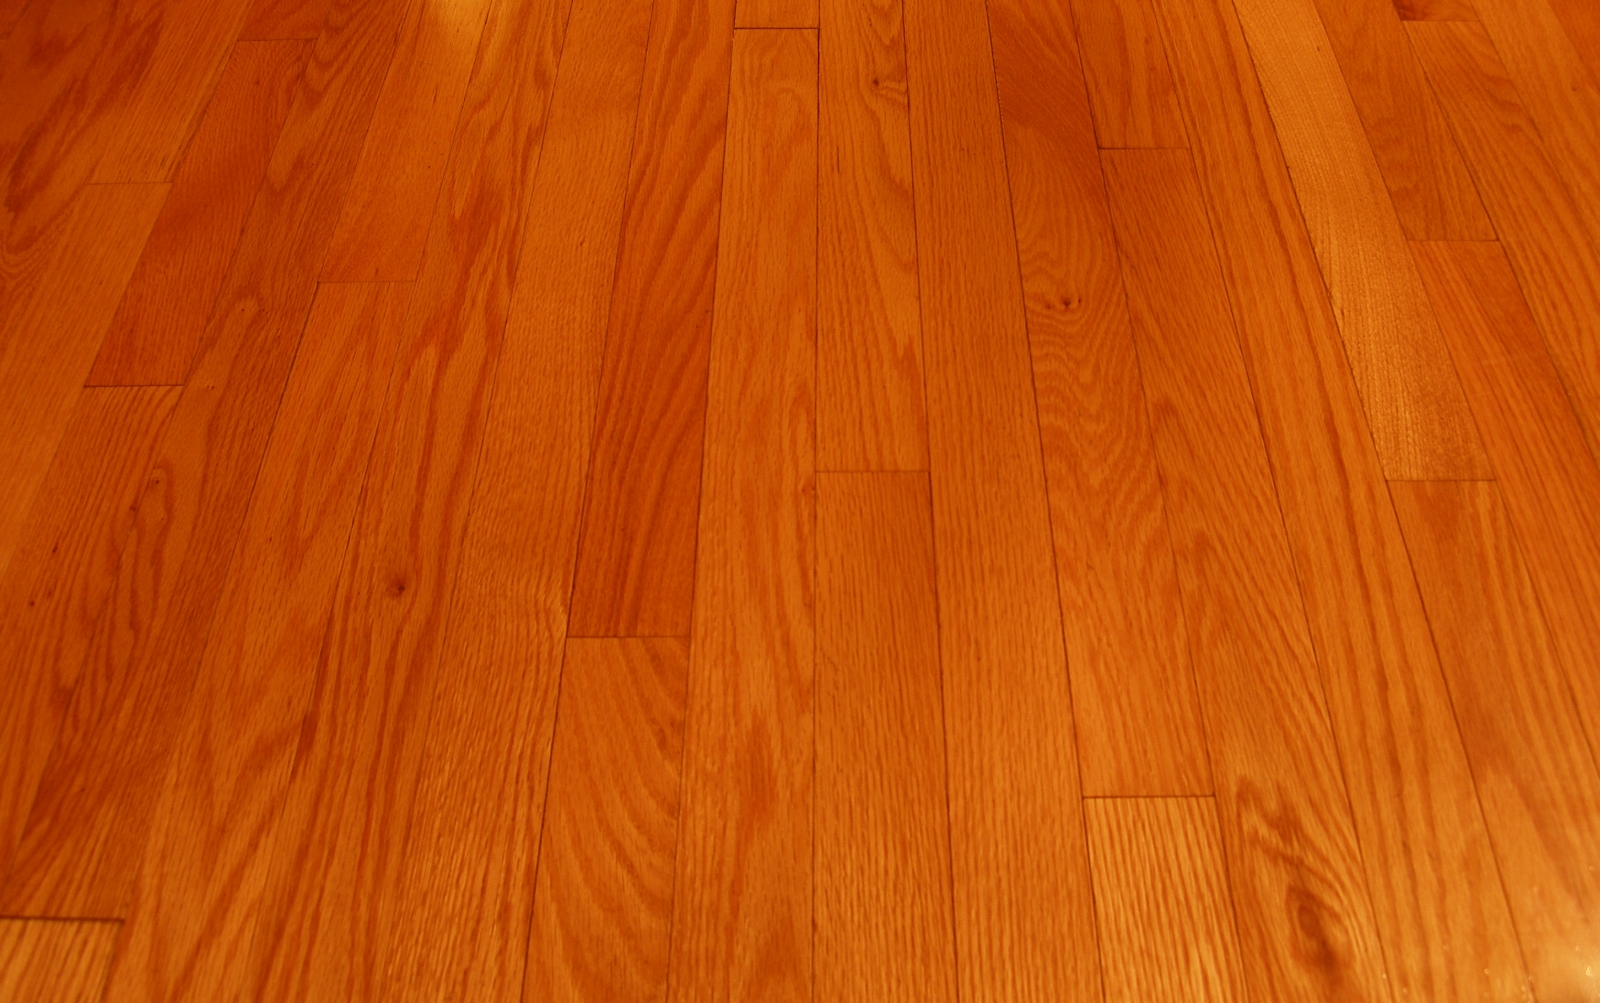 unique wood floors choosing between solid vs engineered On hardwood wood flooring